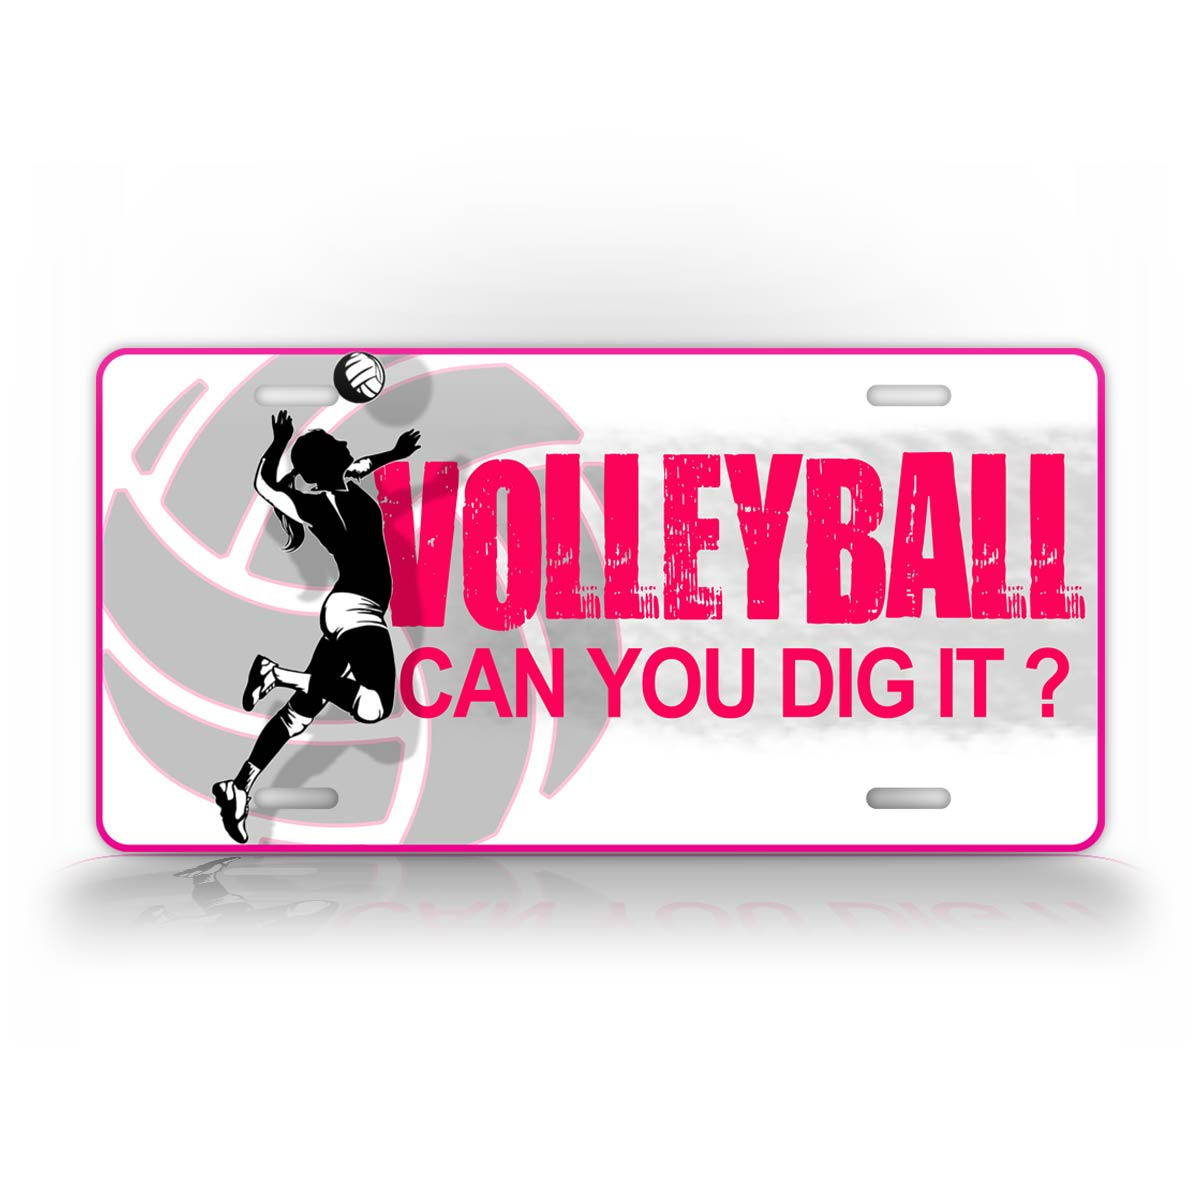 Pink Vollyball Licese Plate Can You Dig It Auto Tag